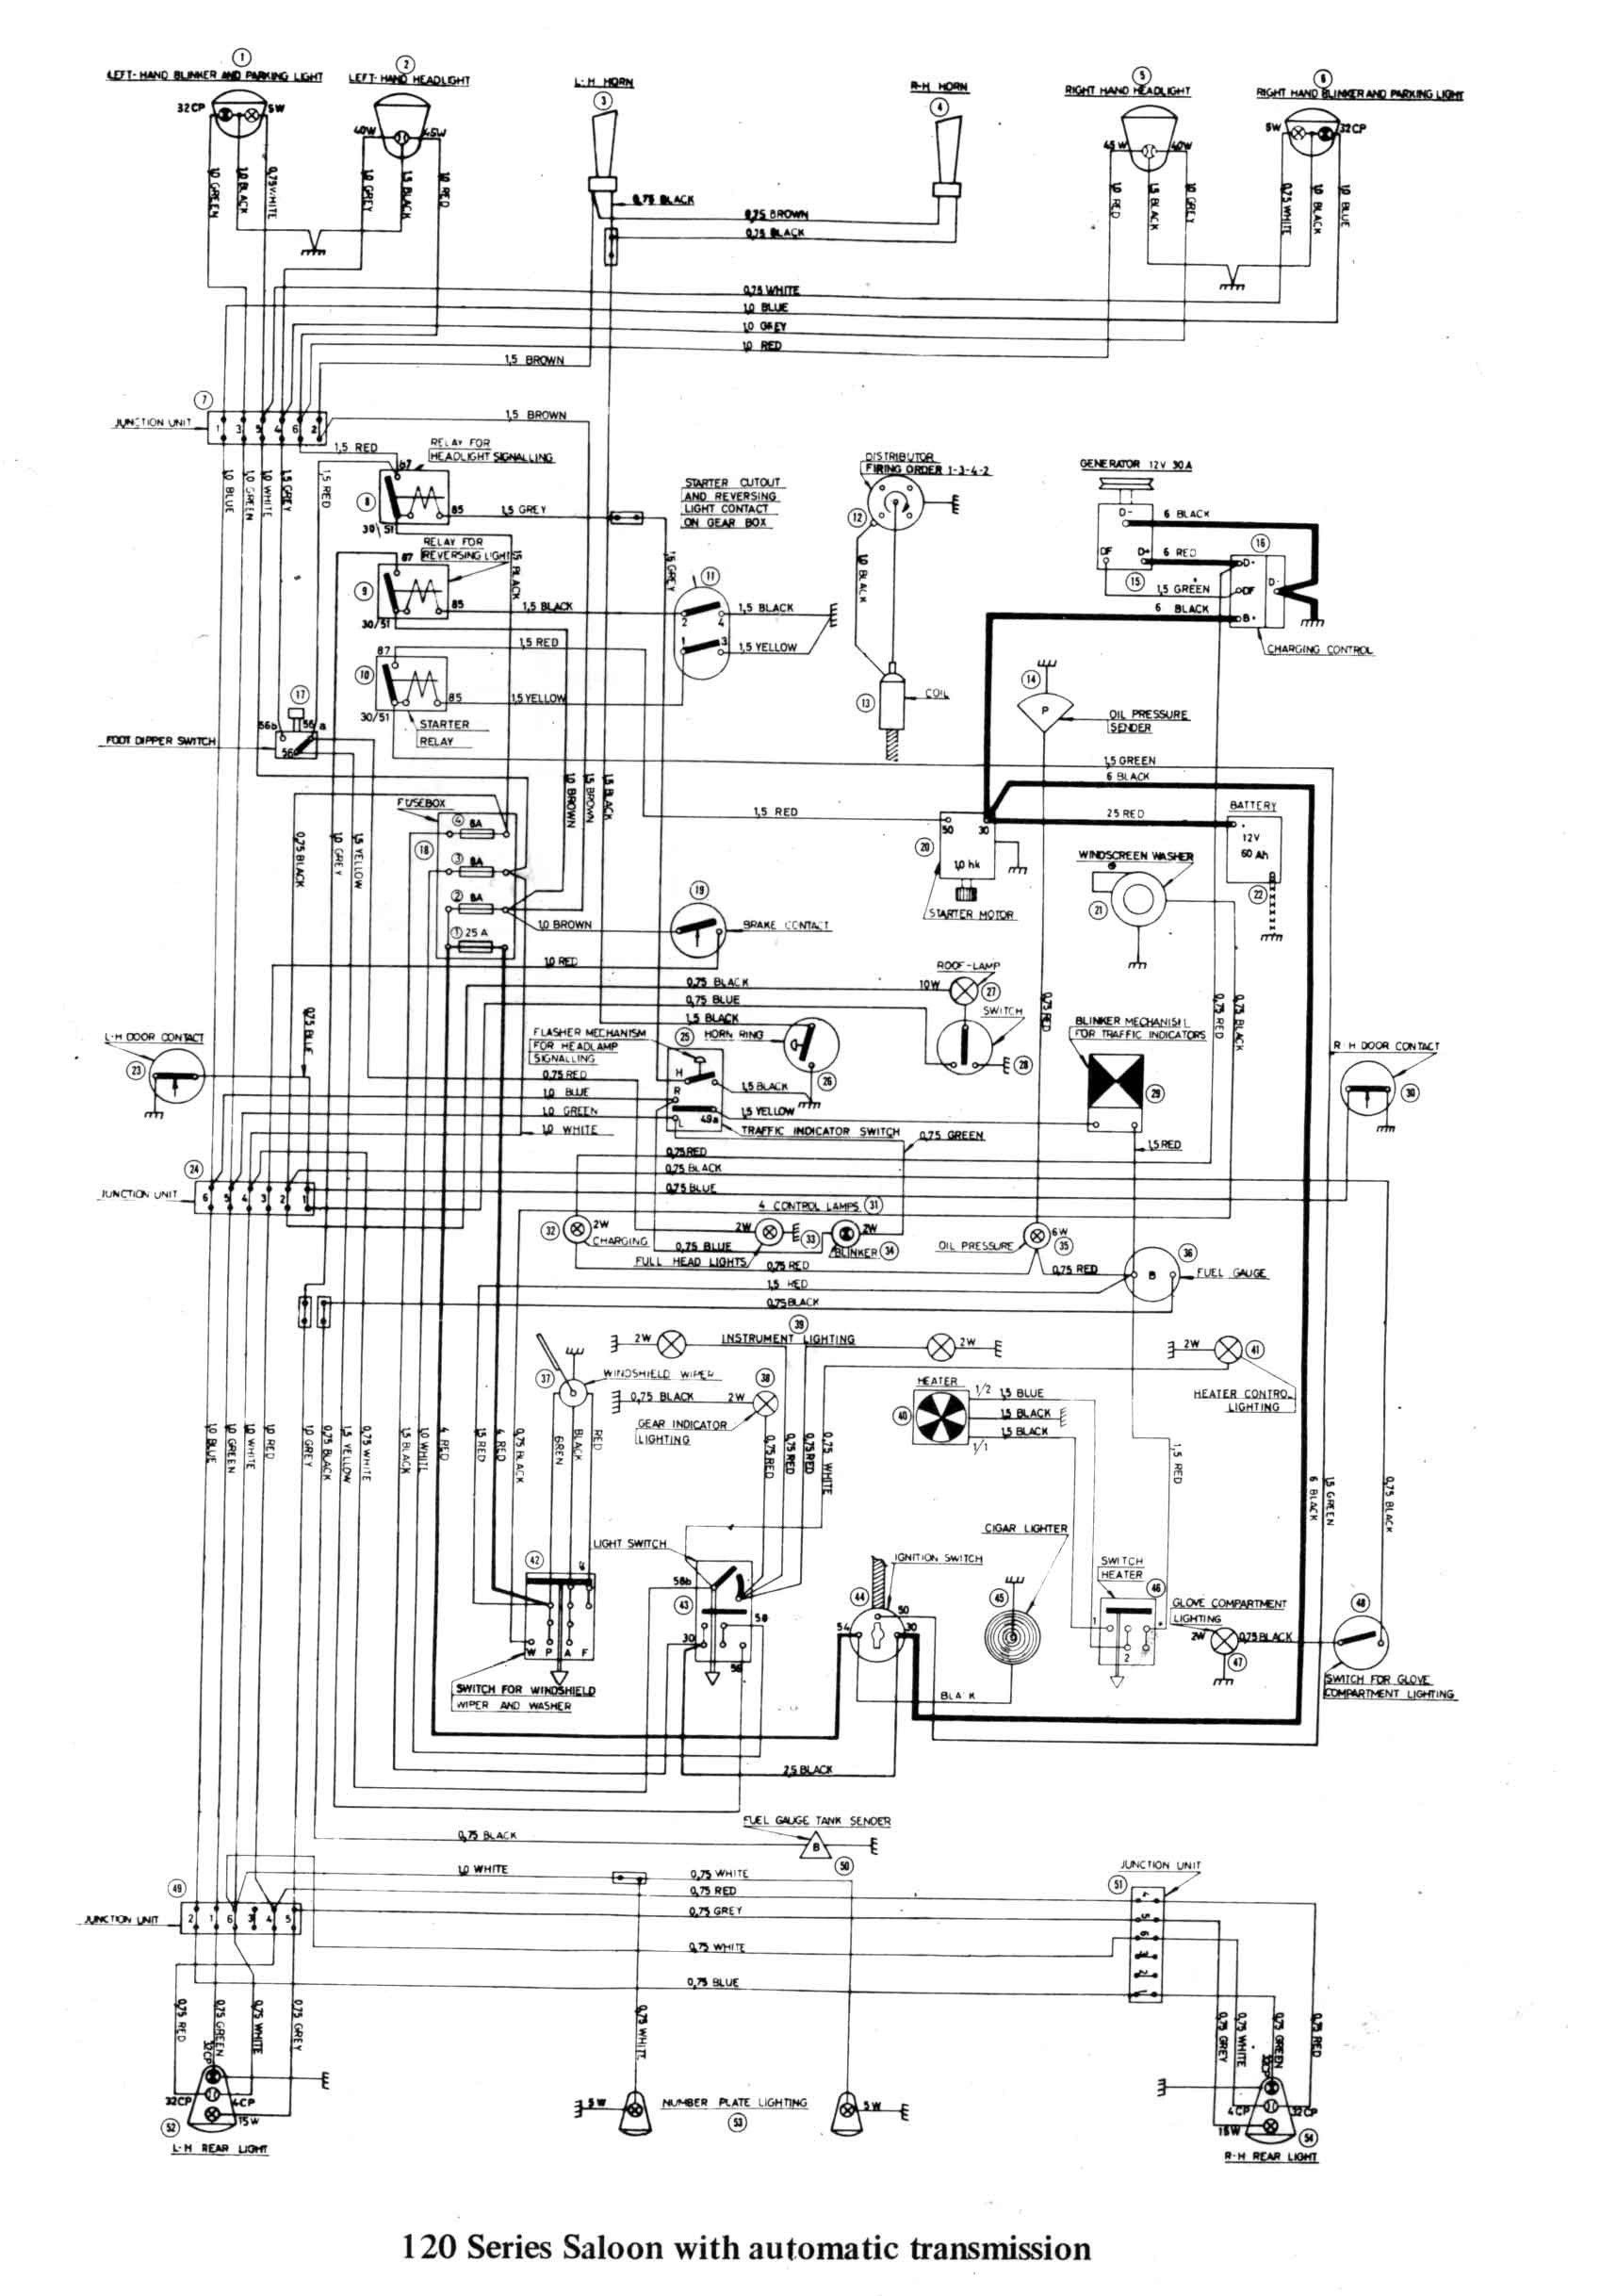 Unique Emg Hz Wiring Diagram In 2020 Electrical Wiring Diagram Trailer Wiring Diagram Diagram